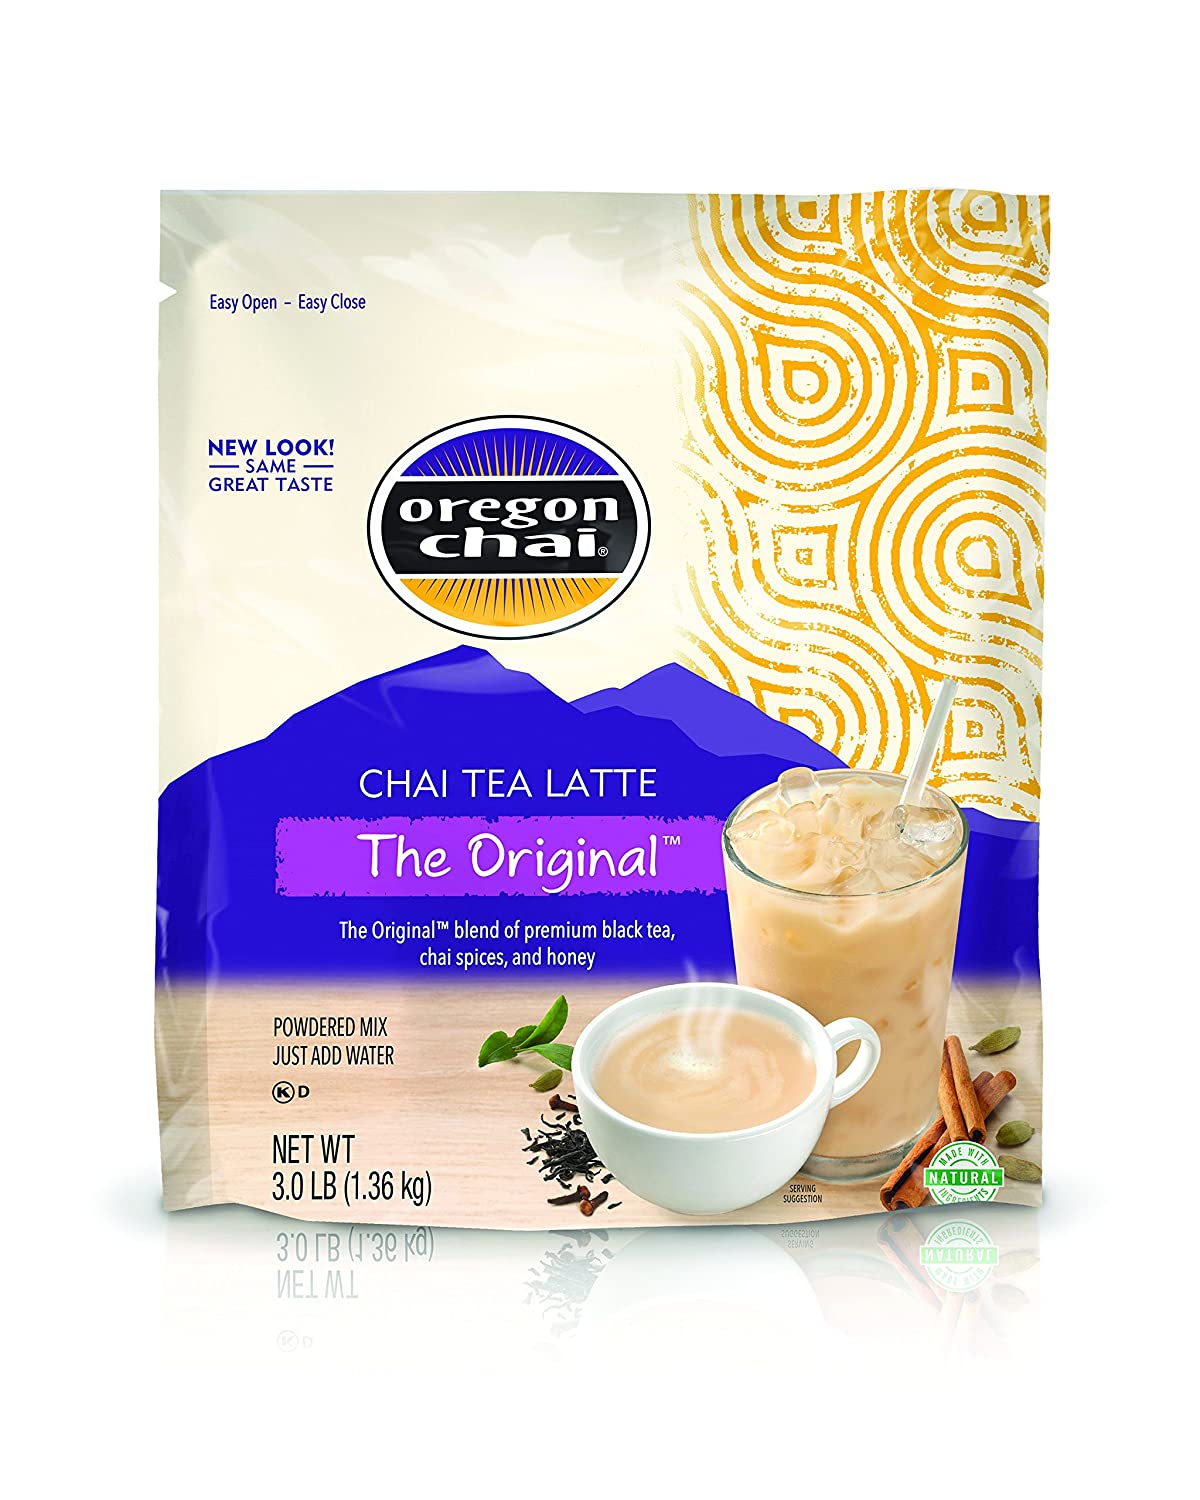 Oregon Chai The Original Chai Tea Latte Mix 3 Pound, Bulk Powdered Spiced Black Tea Latte Mix For Home Use, Café, Food Service